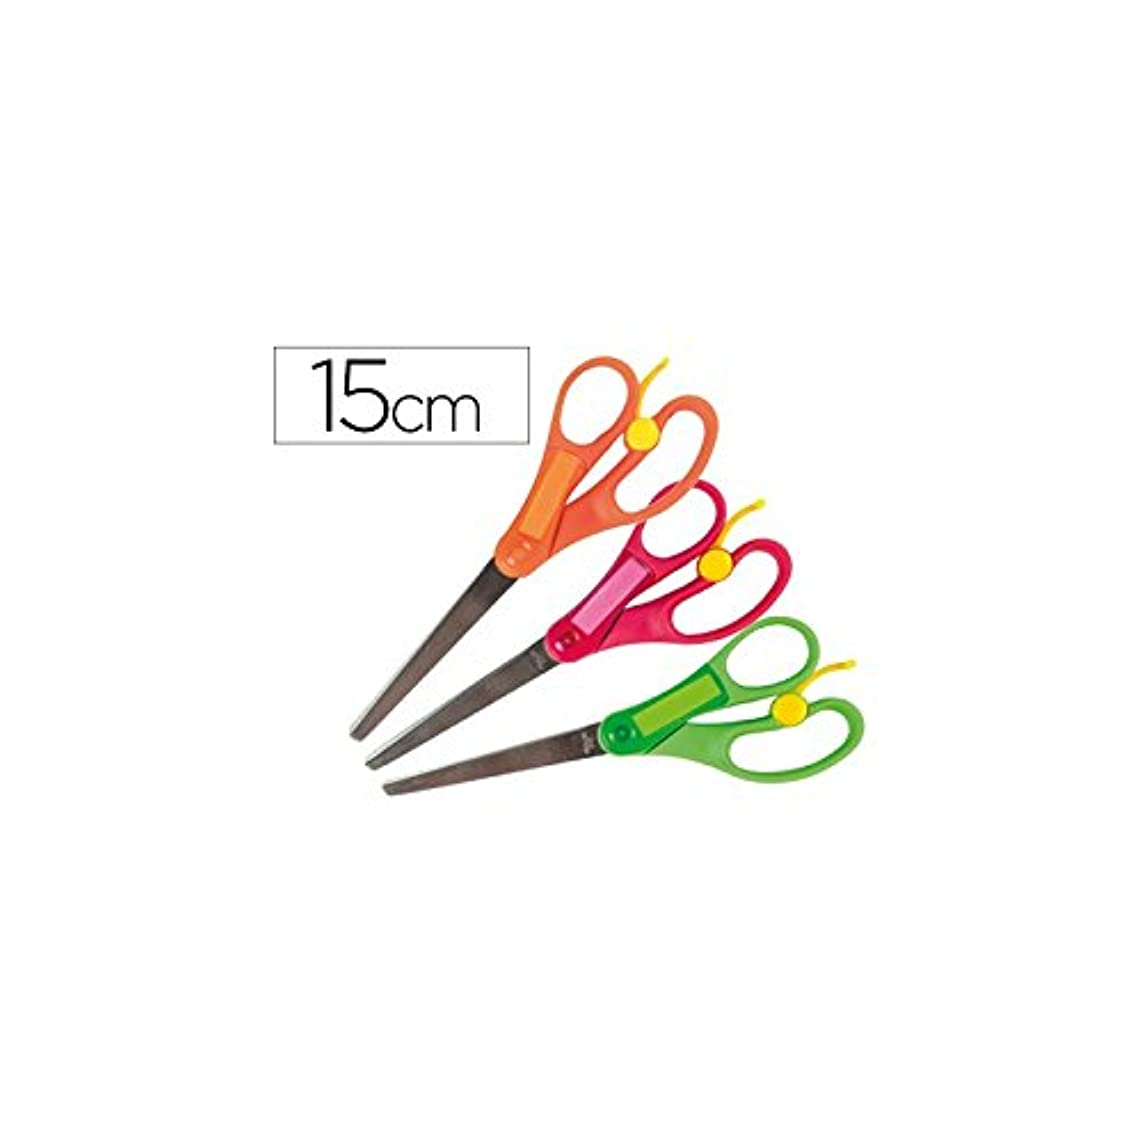 liderpapel 74842?x 5-8?Years Blades Scissors Stainless Steel Curved Tip Anti-Coupe Length 15?cm Assorted Colours